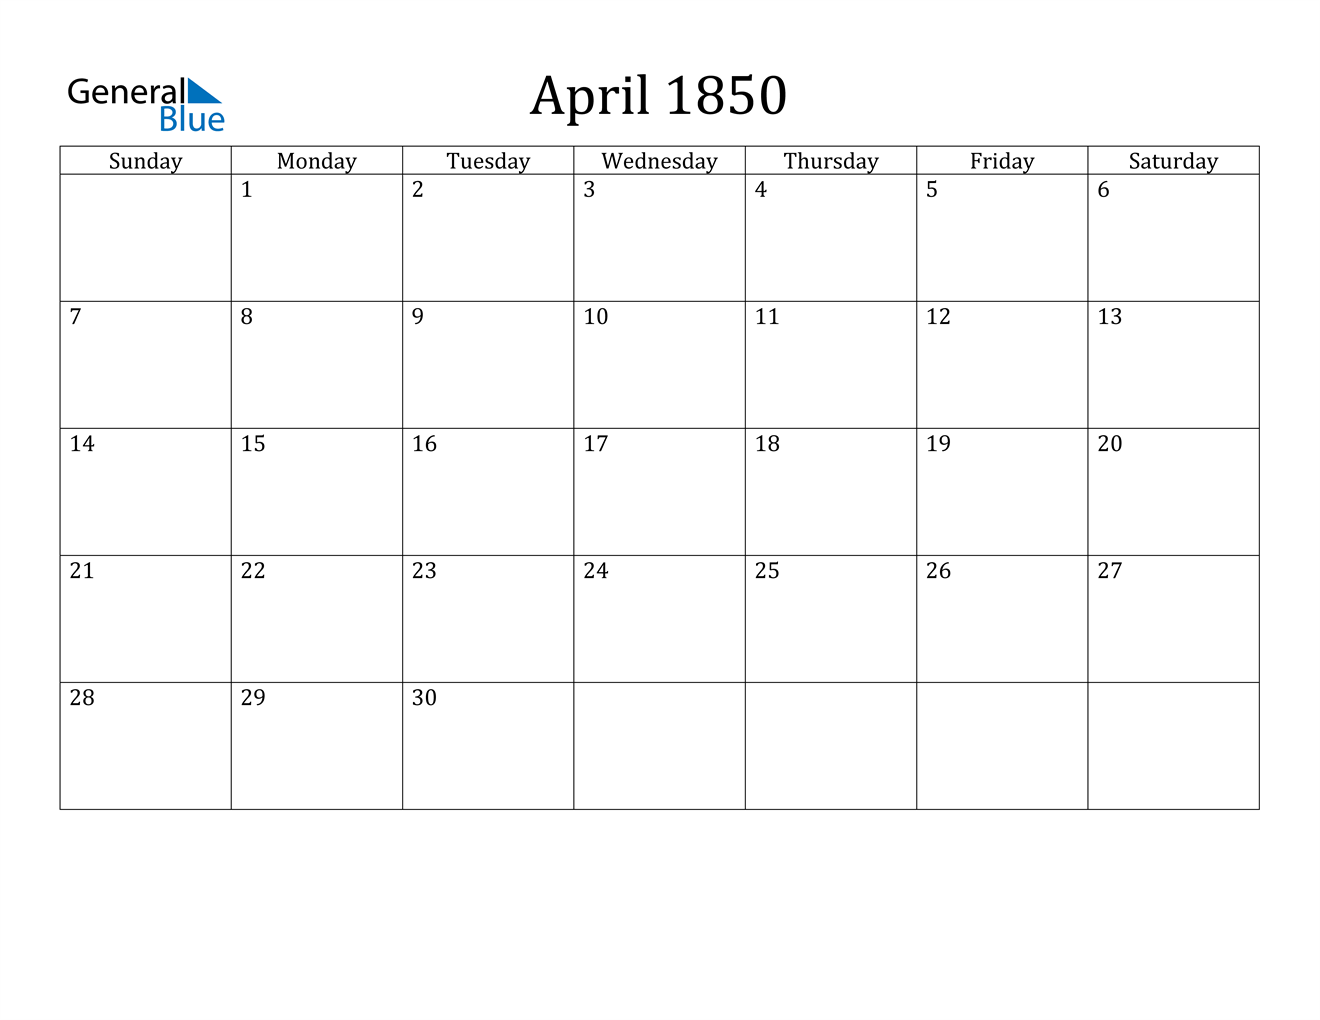 Image of April 1850 Calendar